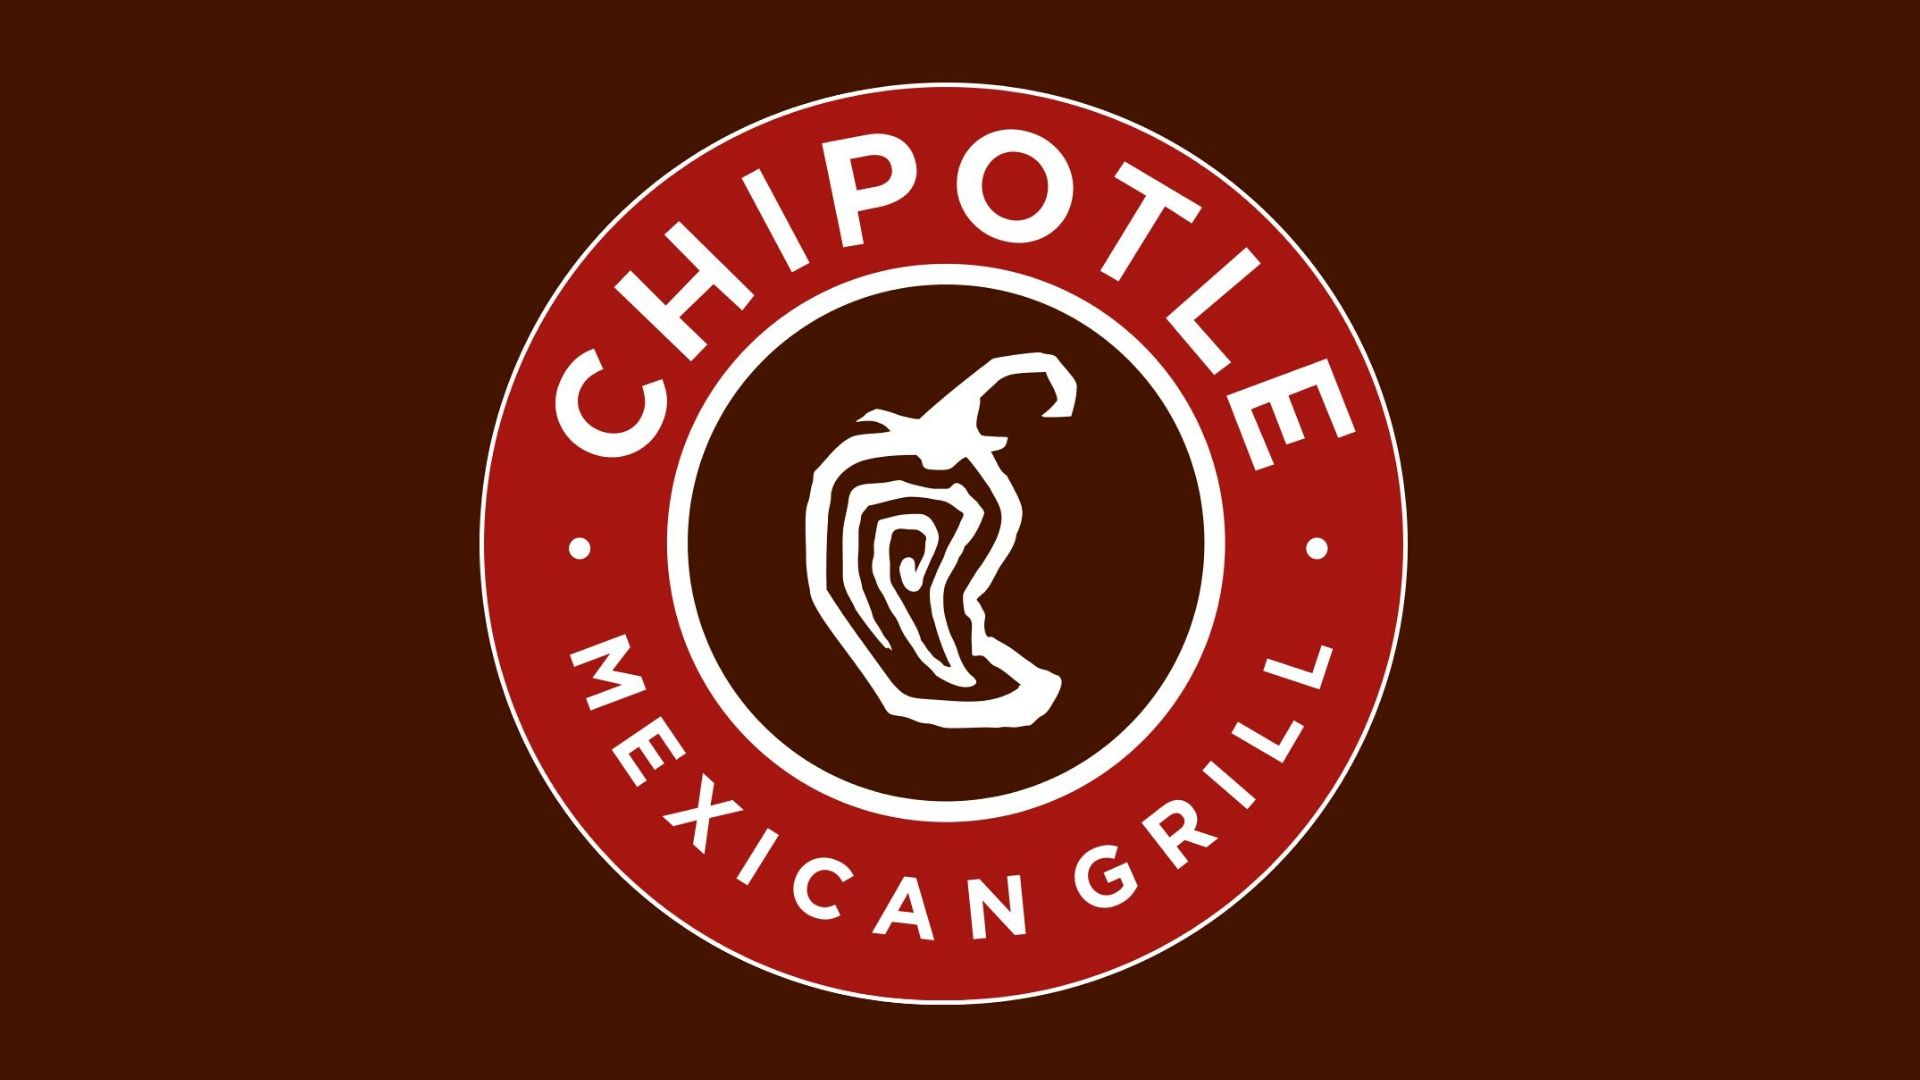 Chipotle Competitors